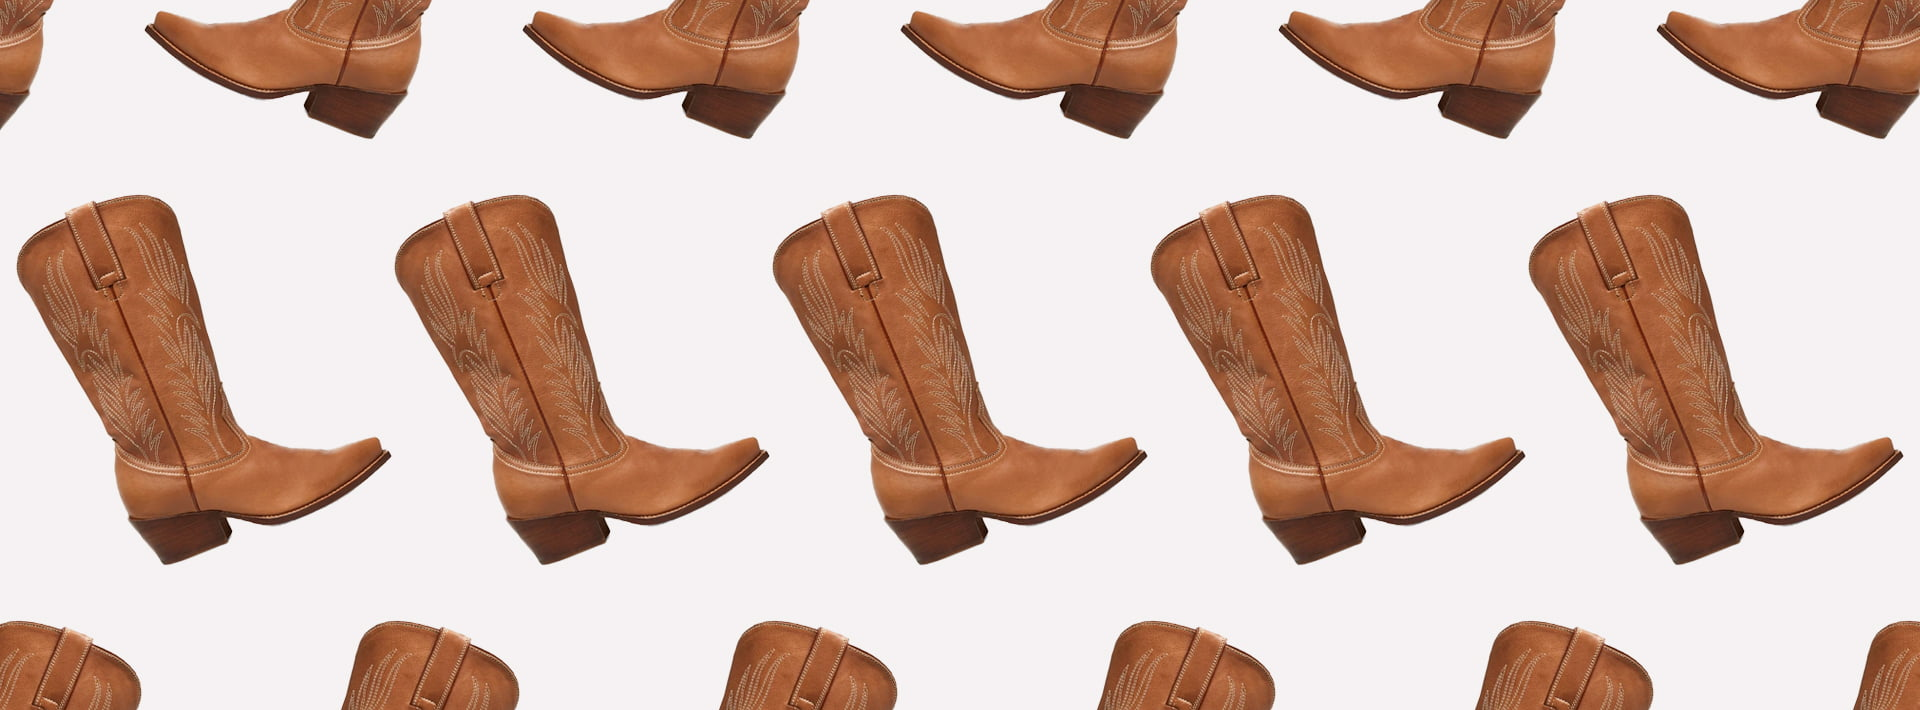 You may need an extra closet just for leather boots.